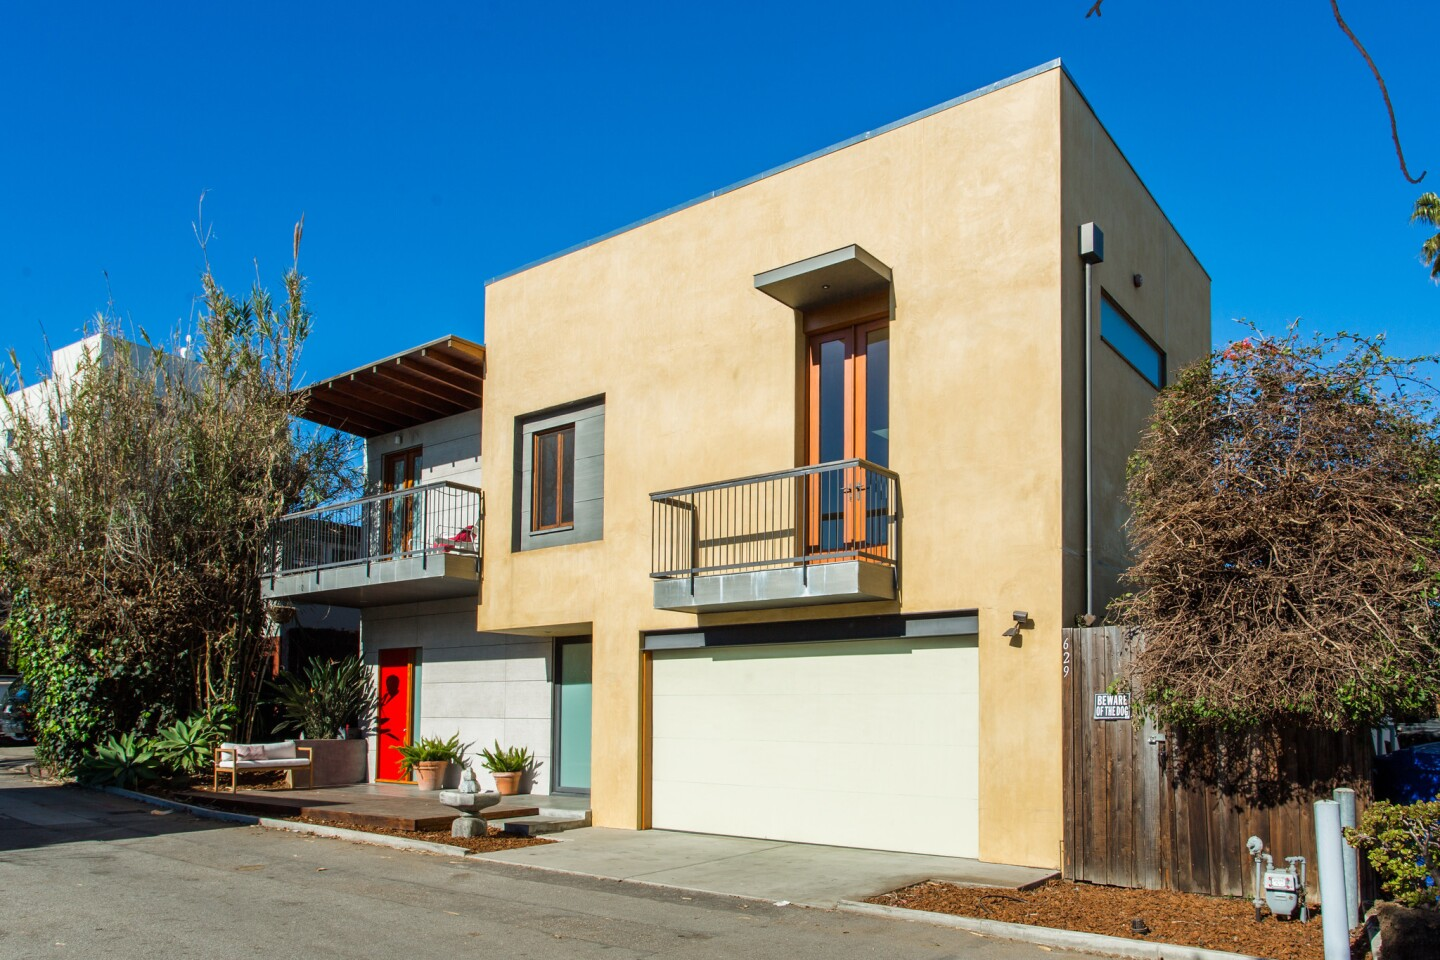 Home of the Day: Baywatch-inspired beauty in Santa Monica